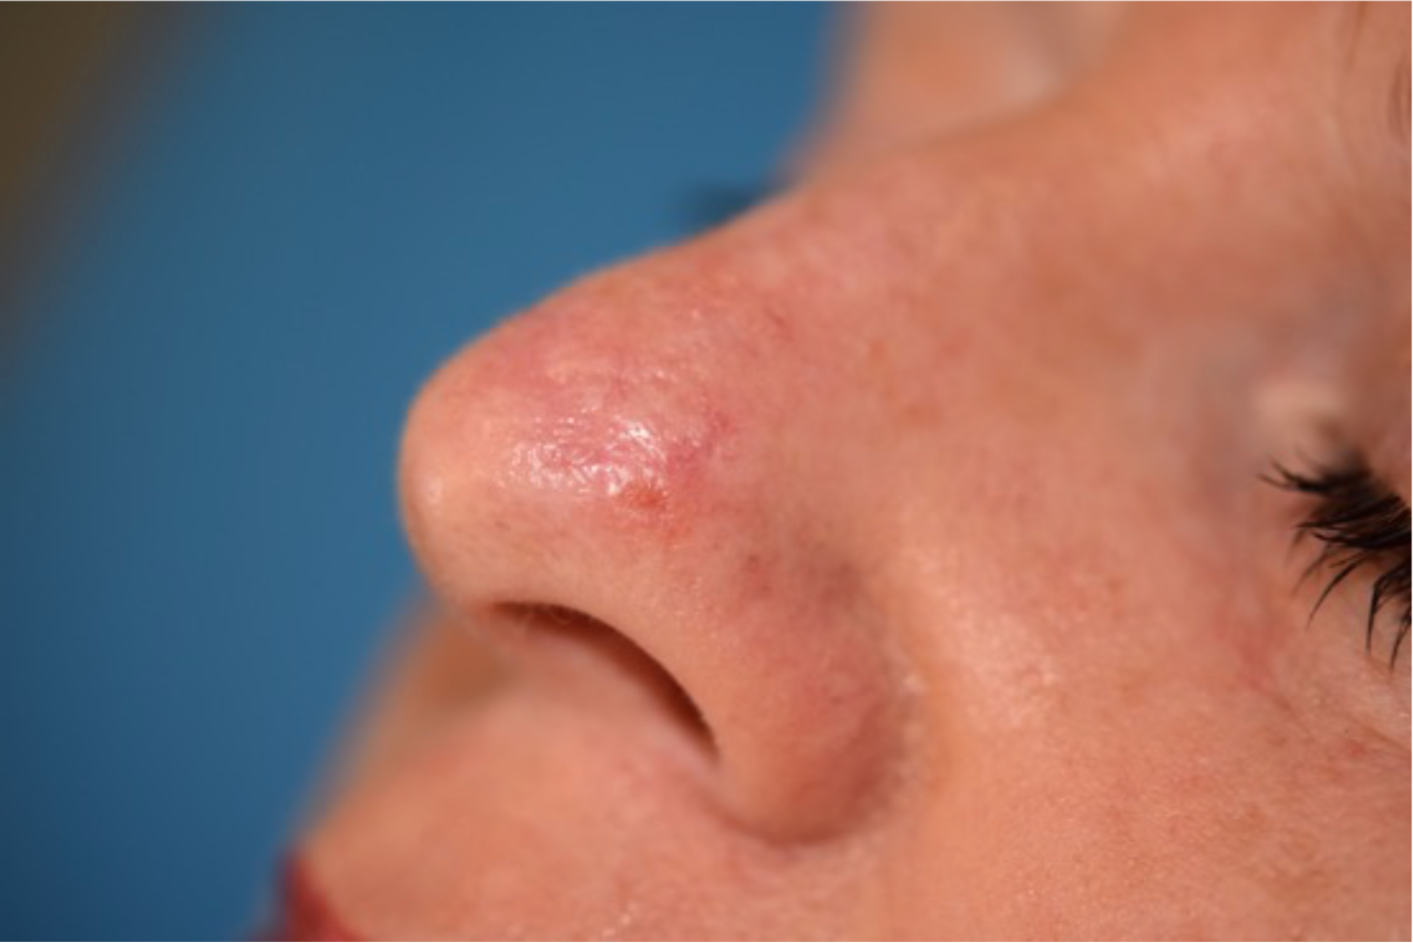 Pink Lesion In The Nose Skin Cancer Blog